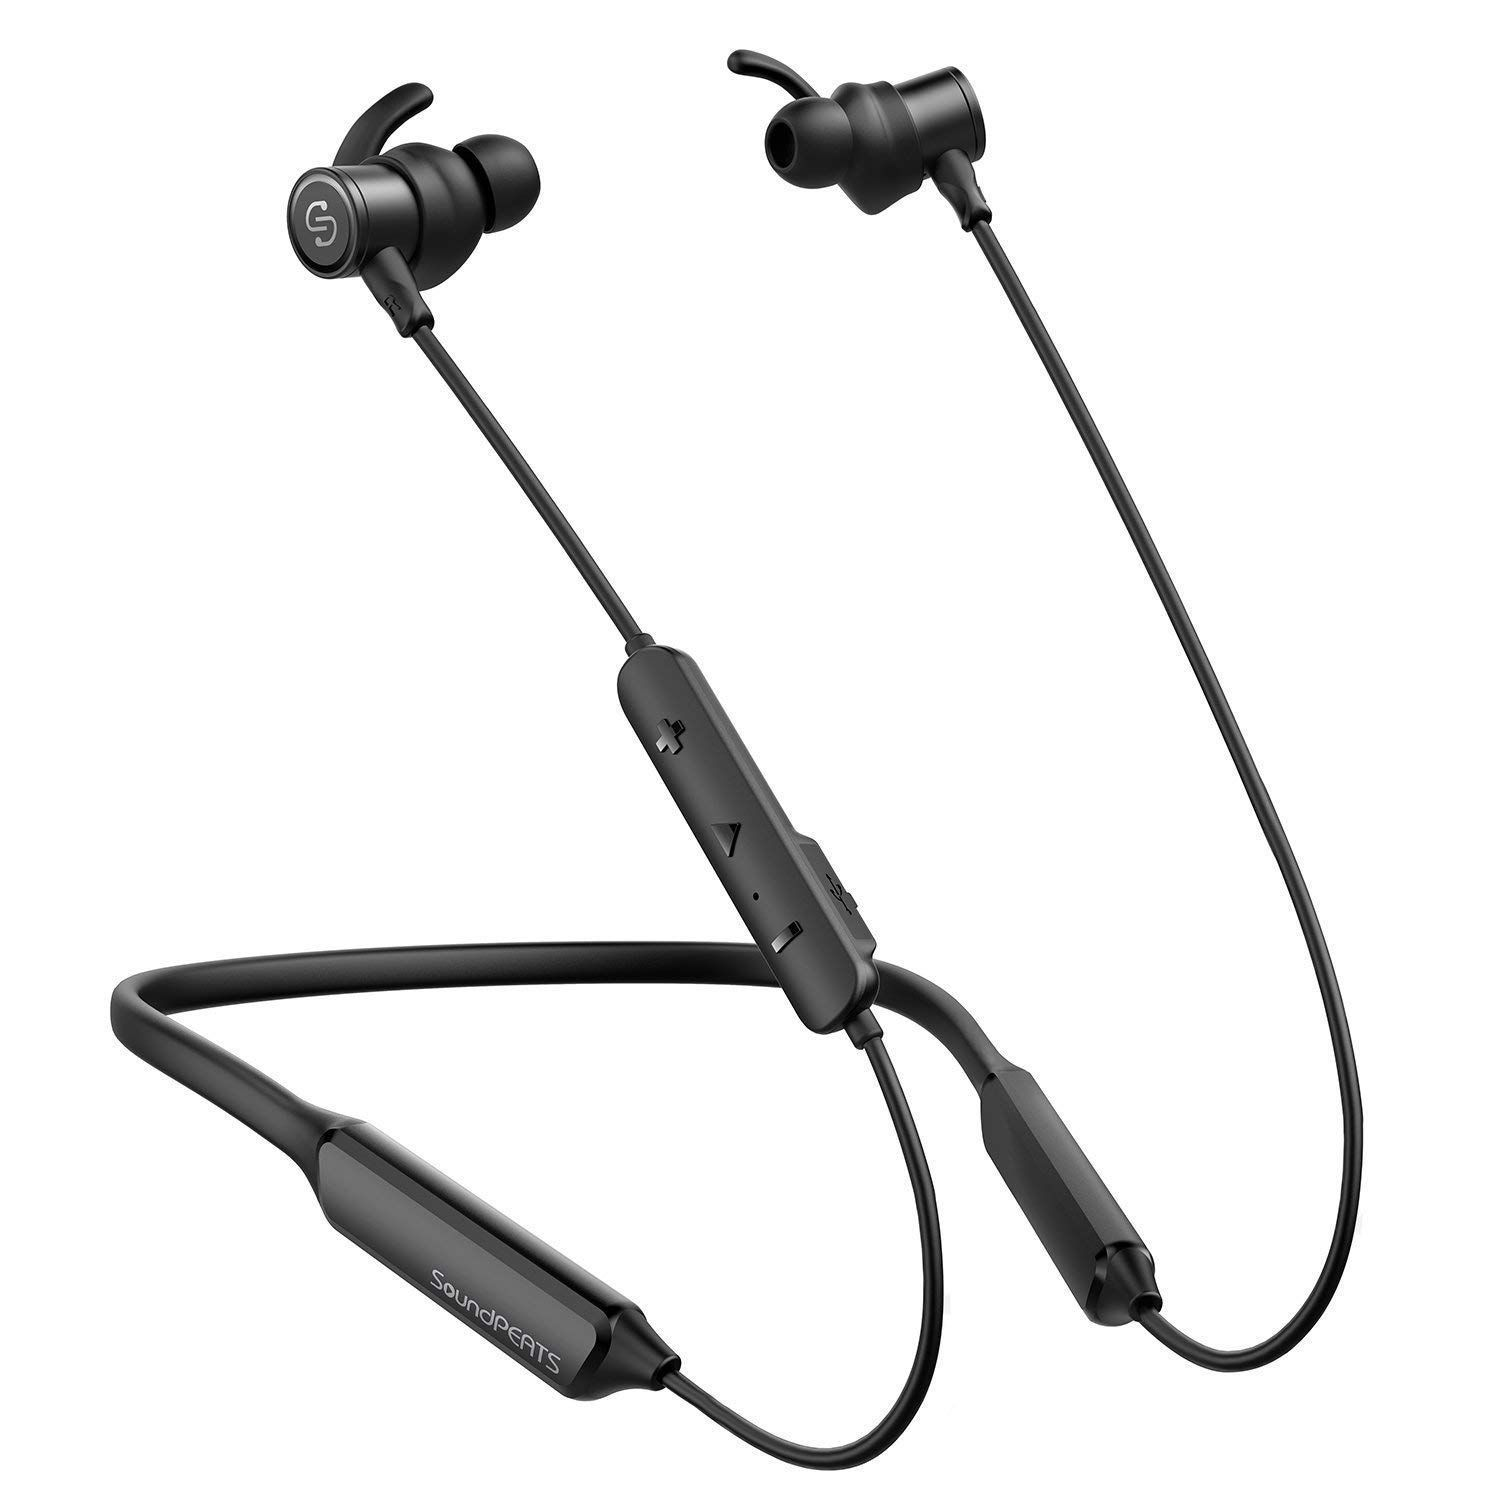 Oferta Flash! Auriculares Bluetooth SoundPeats Q12 sólo